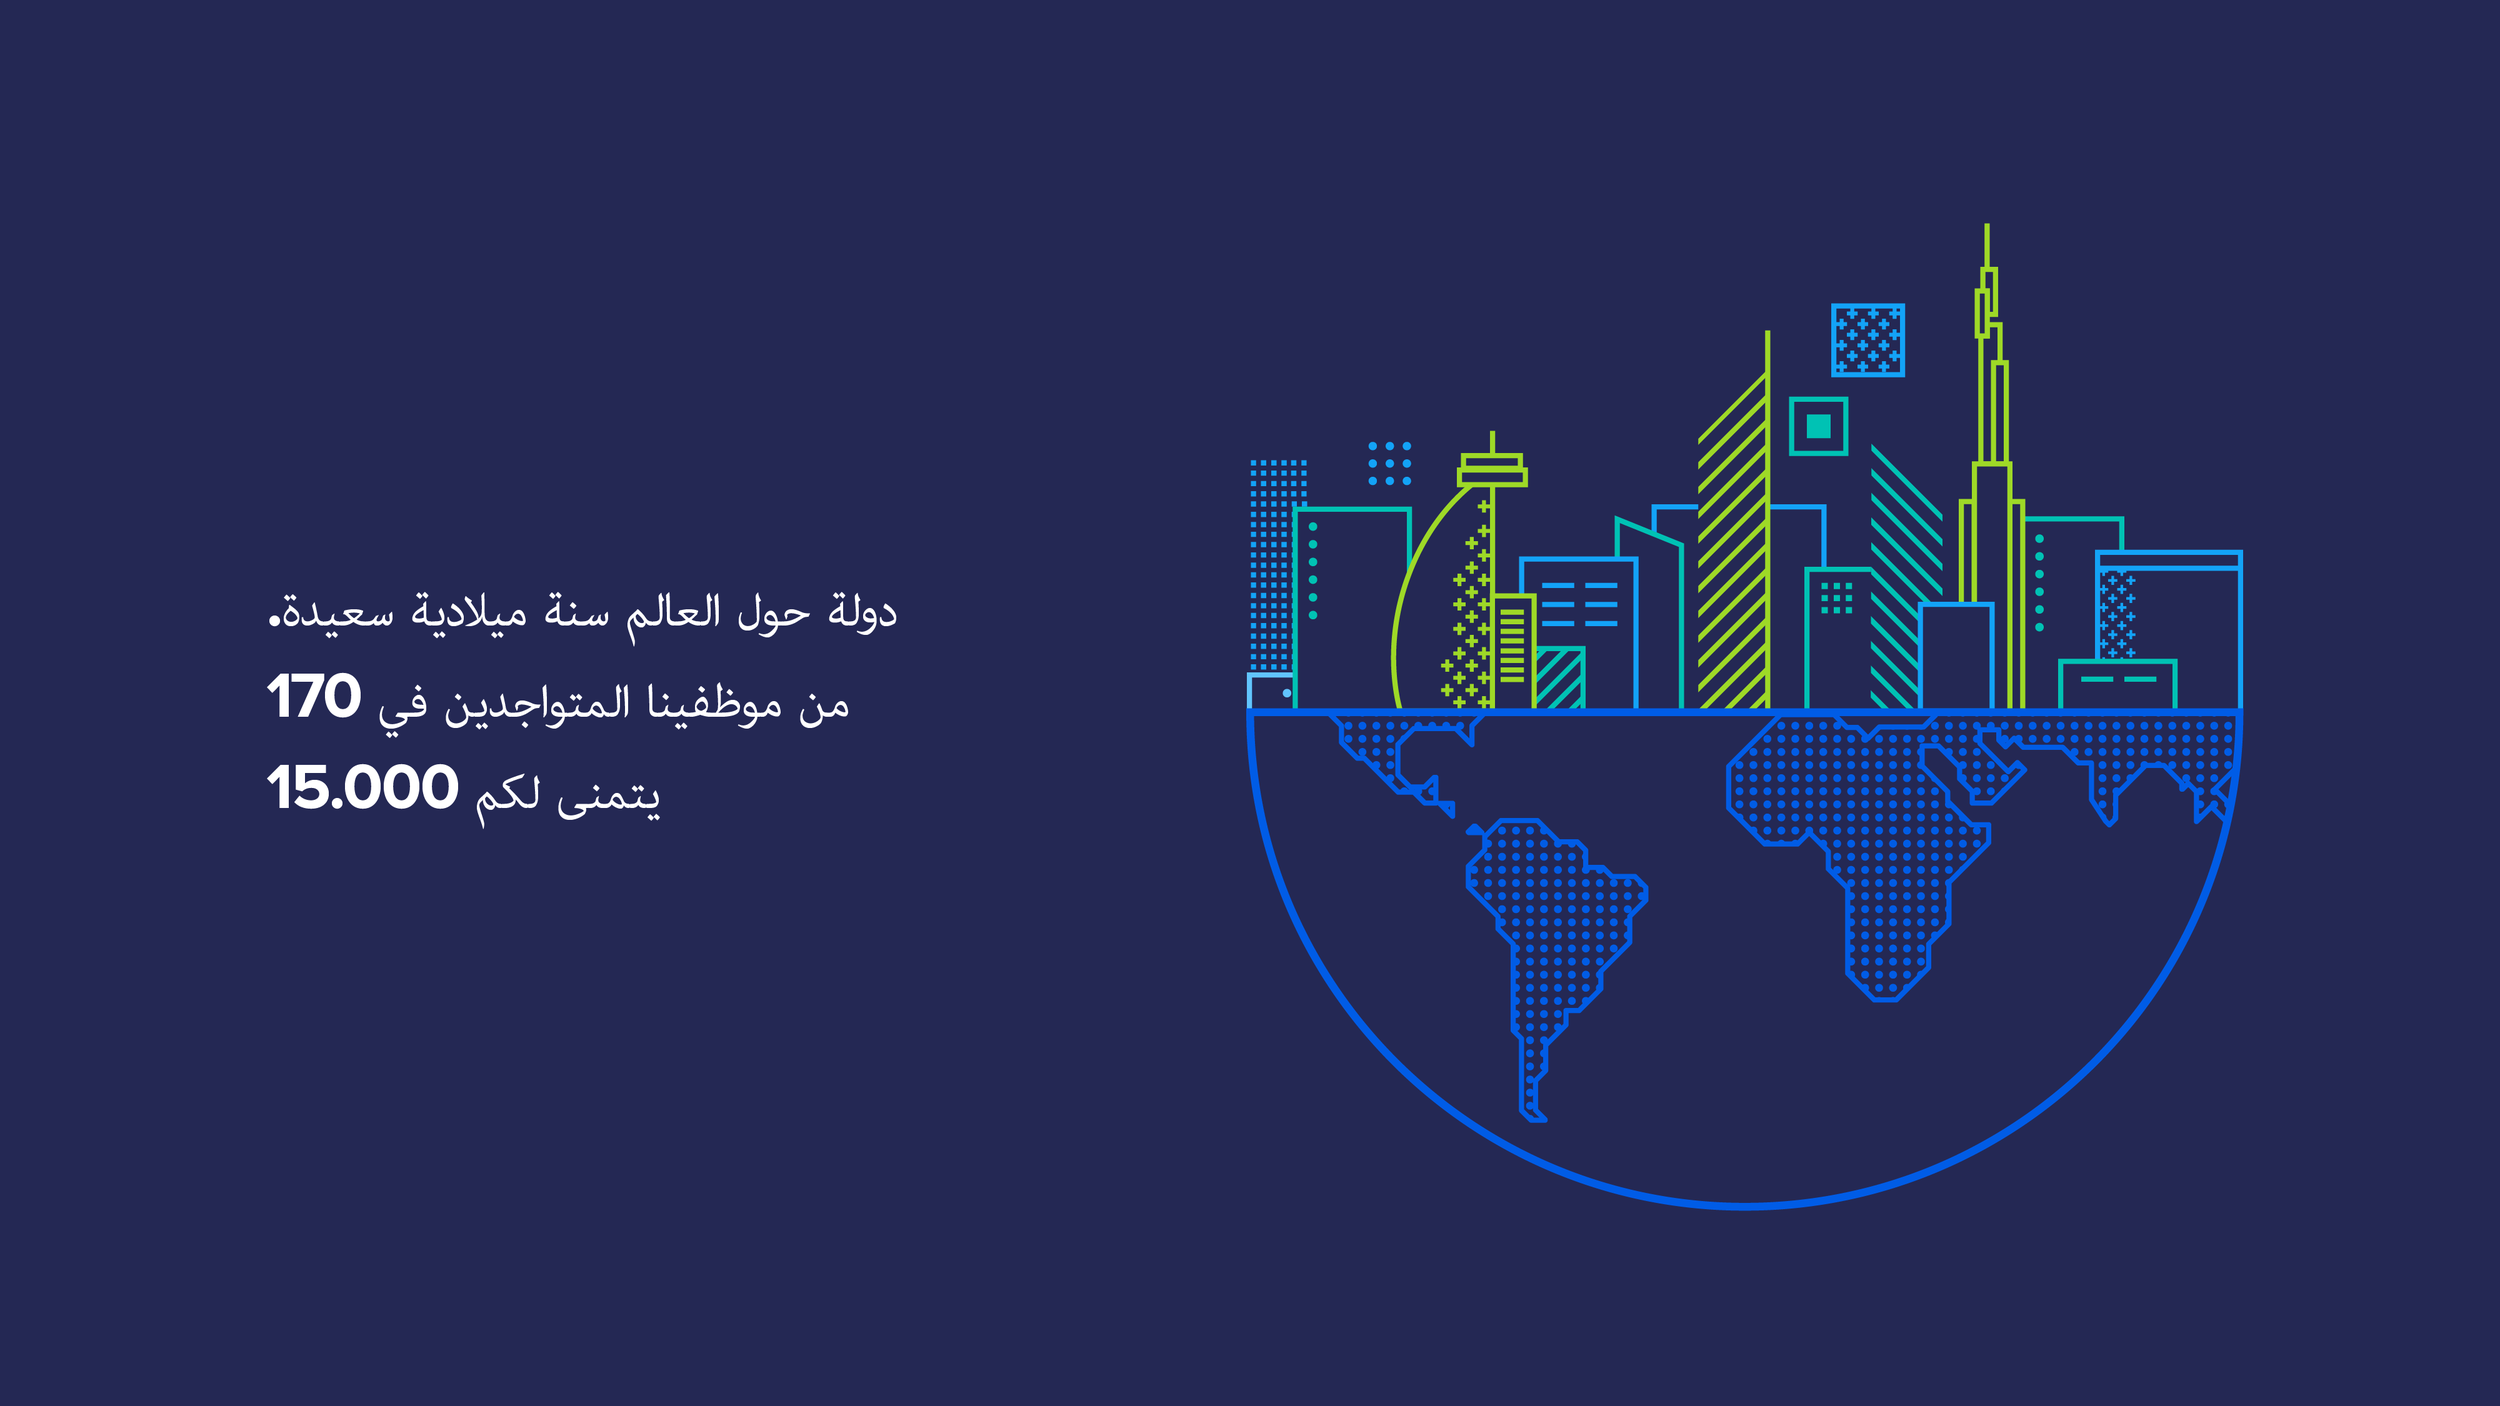 infor_holiday_card_121816_MD_Middle East.png